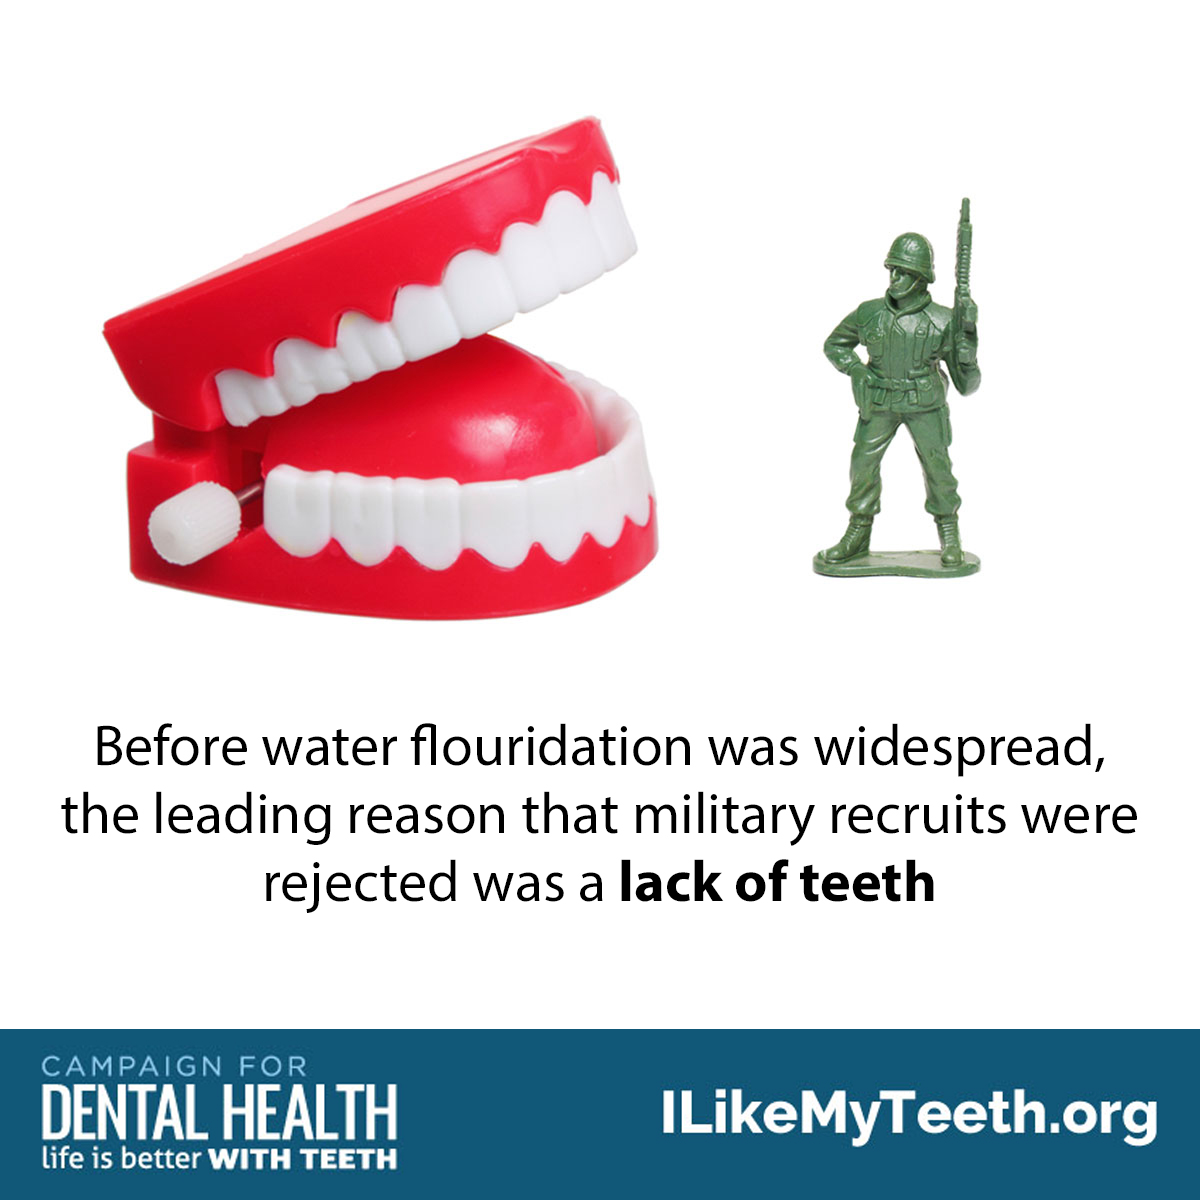 Nation's military and fluoride